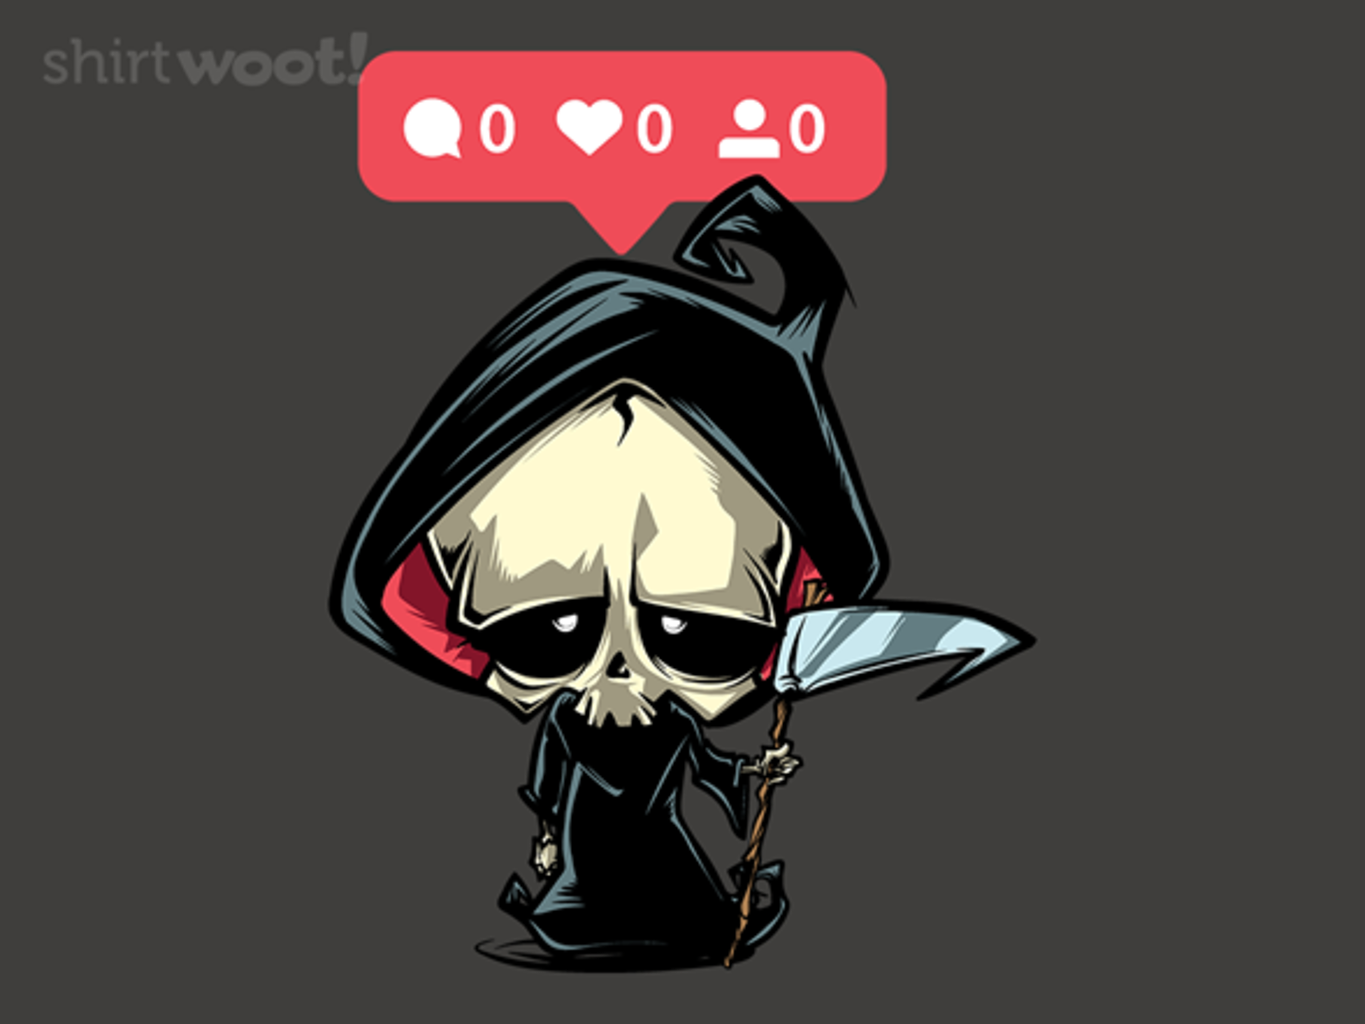 Woot!: The Lonely Reaper